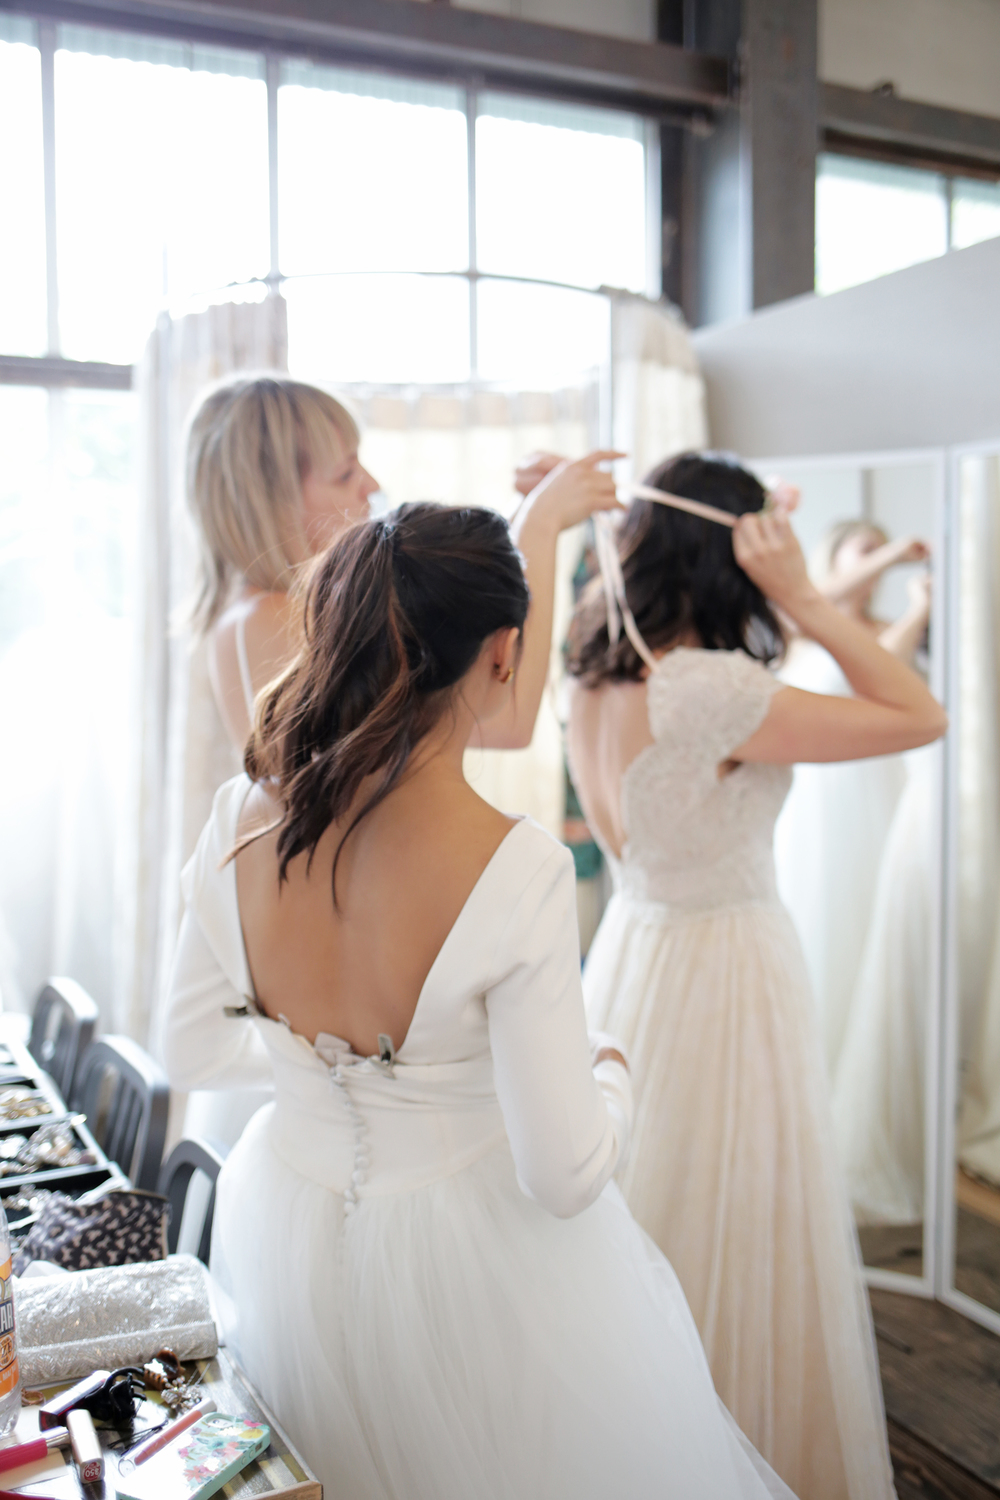 behind-the-scenes at BHLDN | image via: bekuh b.